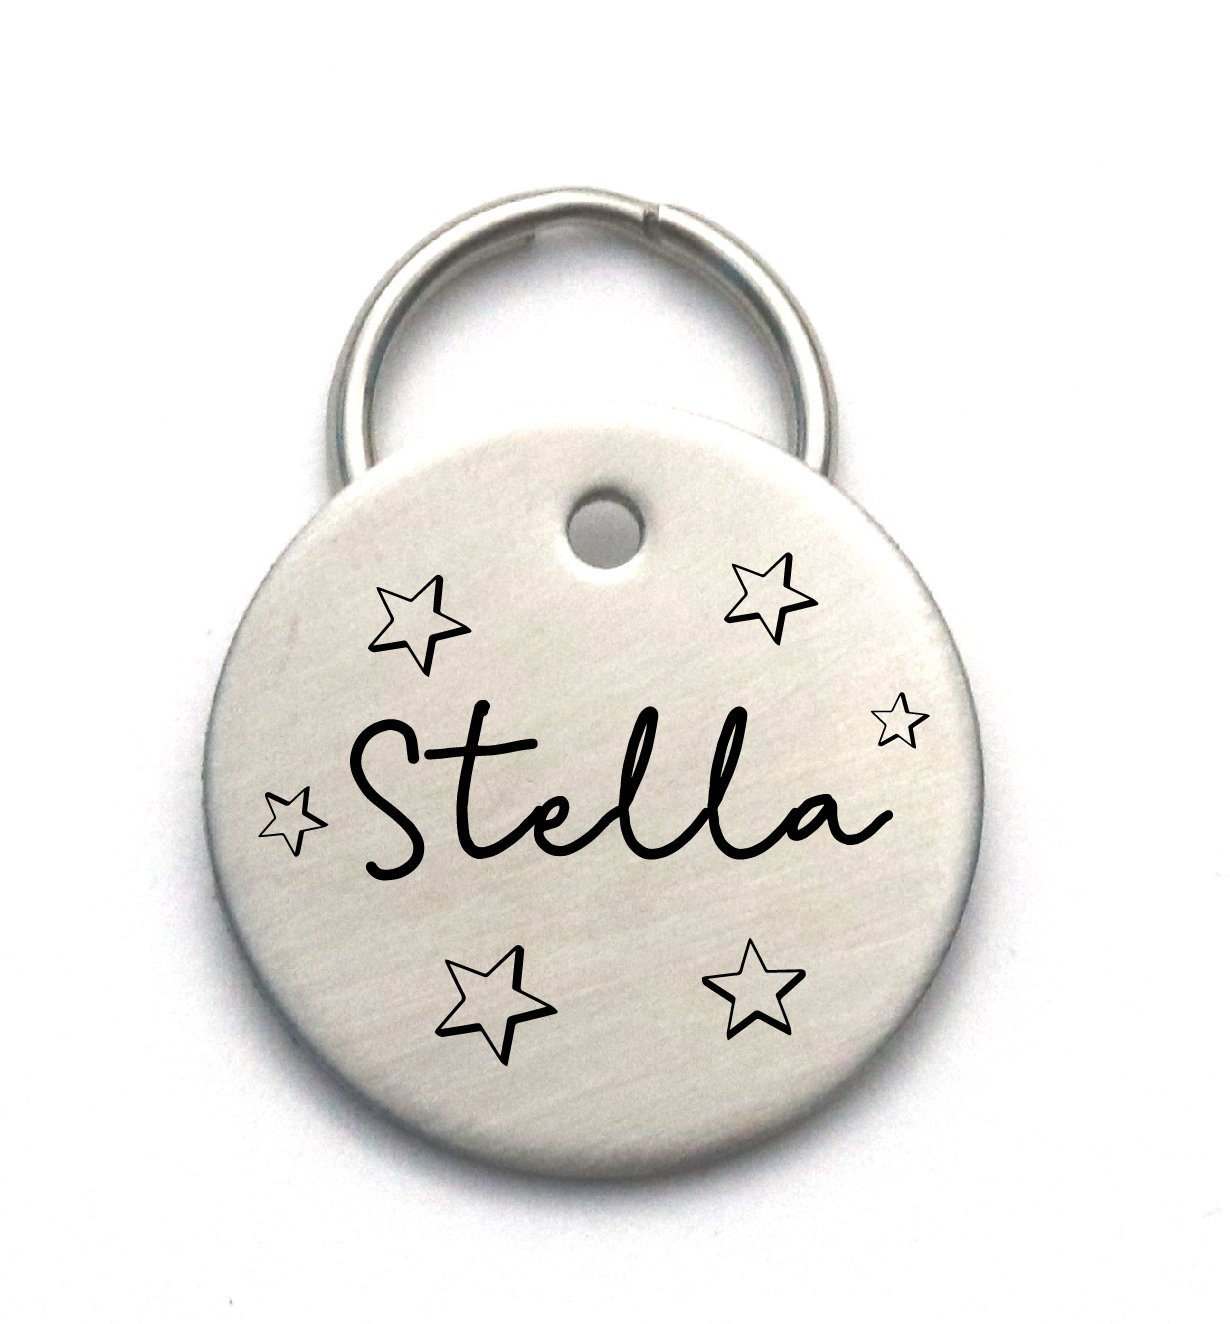 Unique Customized Dog Name Tag With Stars - Engraved Stainless Steel Pet ID - Personalized